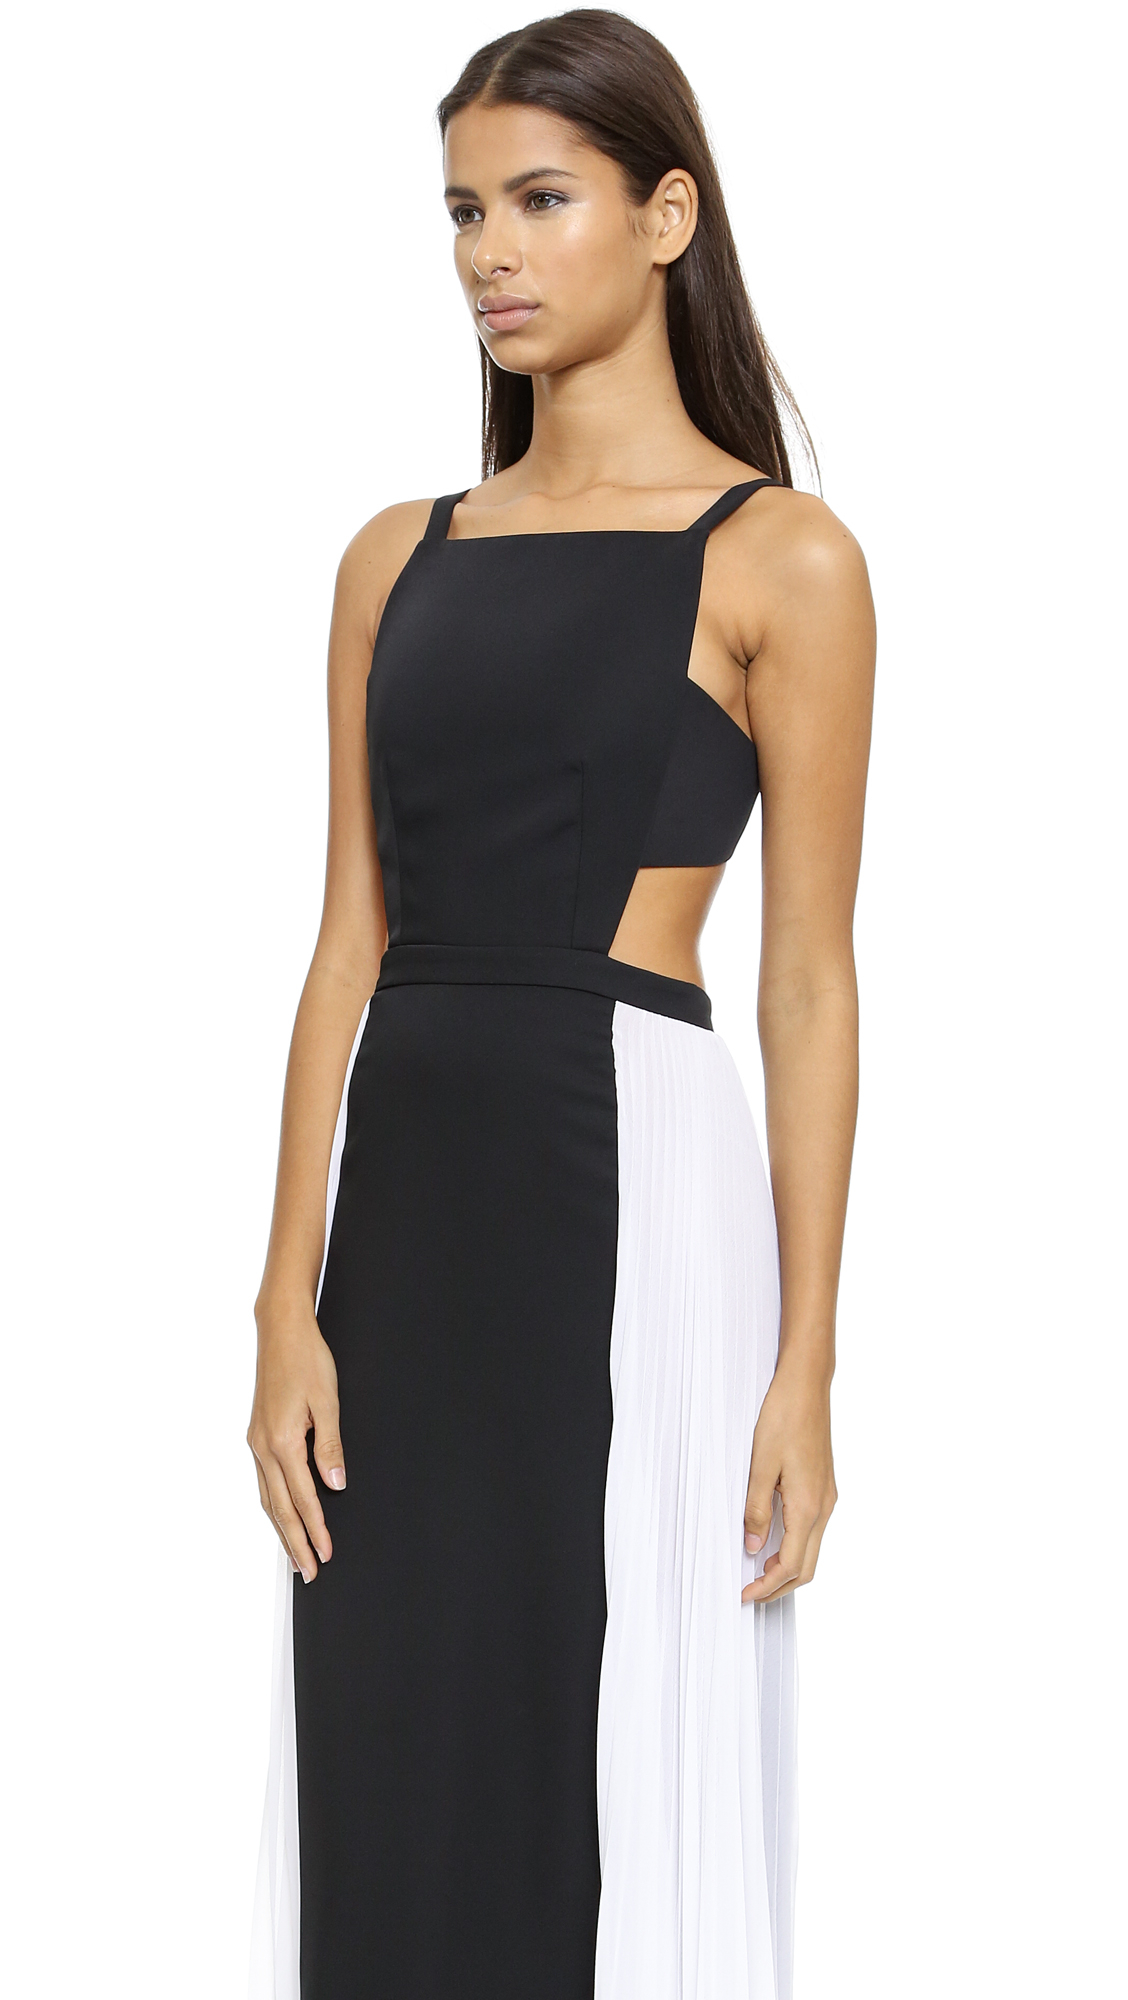 Lotus Brielle Lyst Bcbgmaxazria Brielle Gown Black Combo In Black